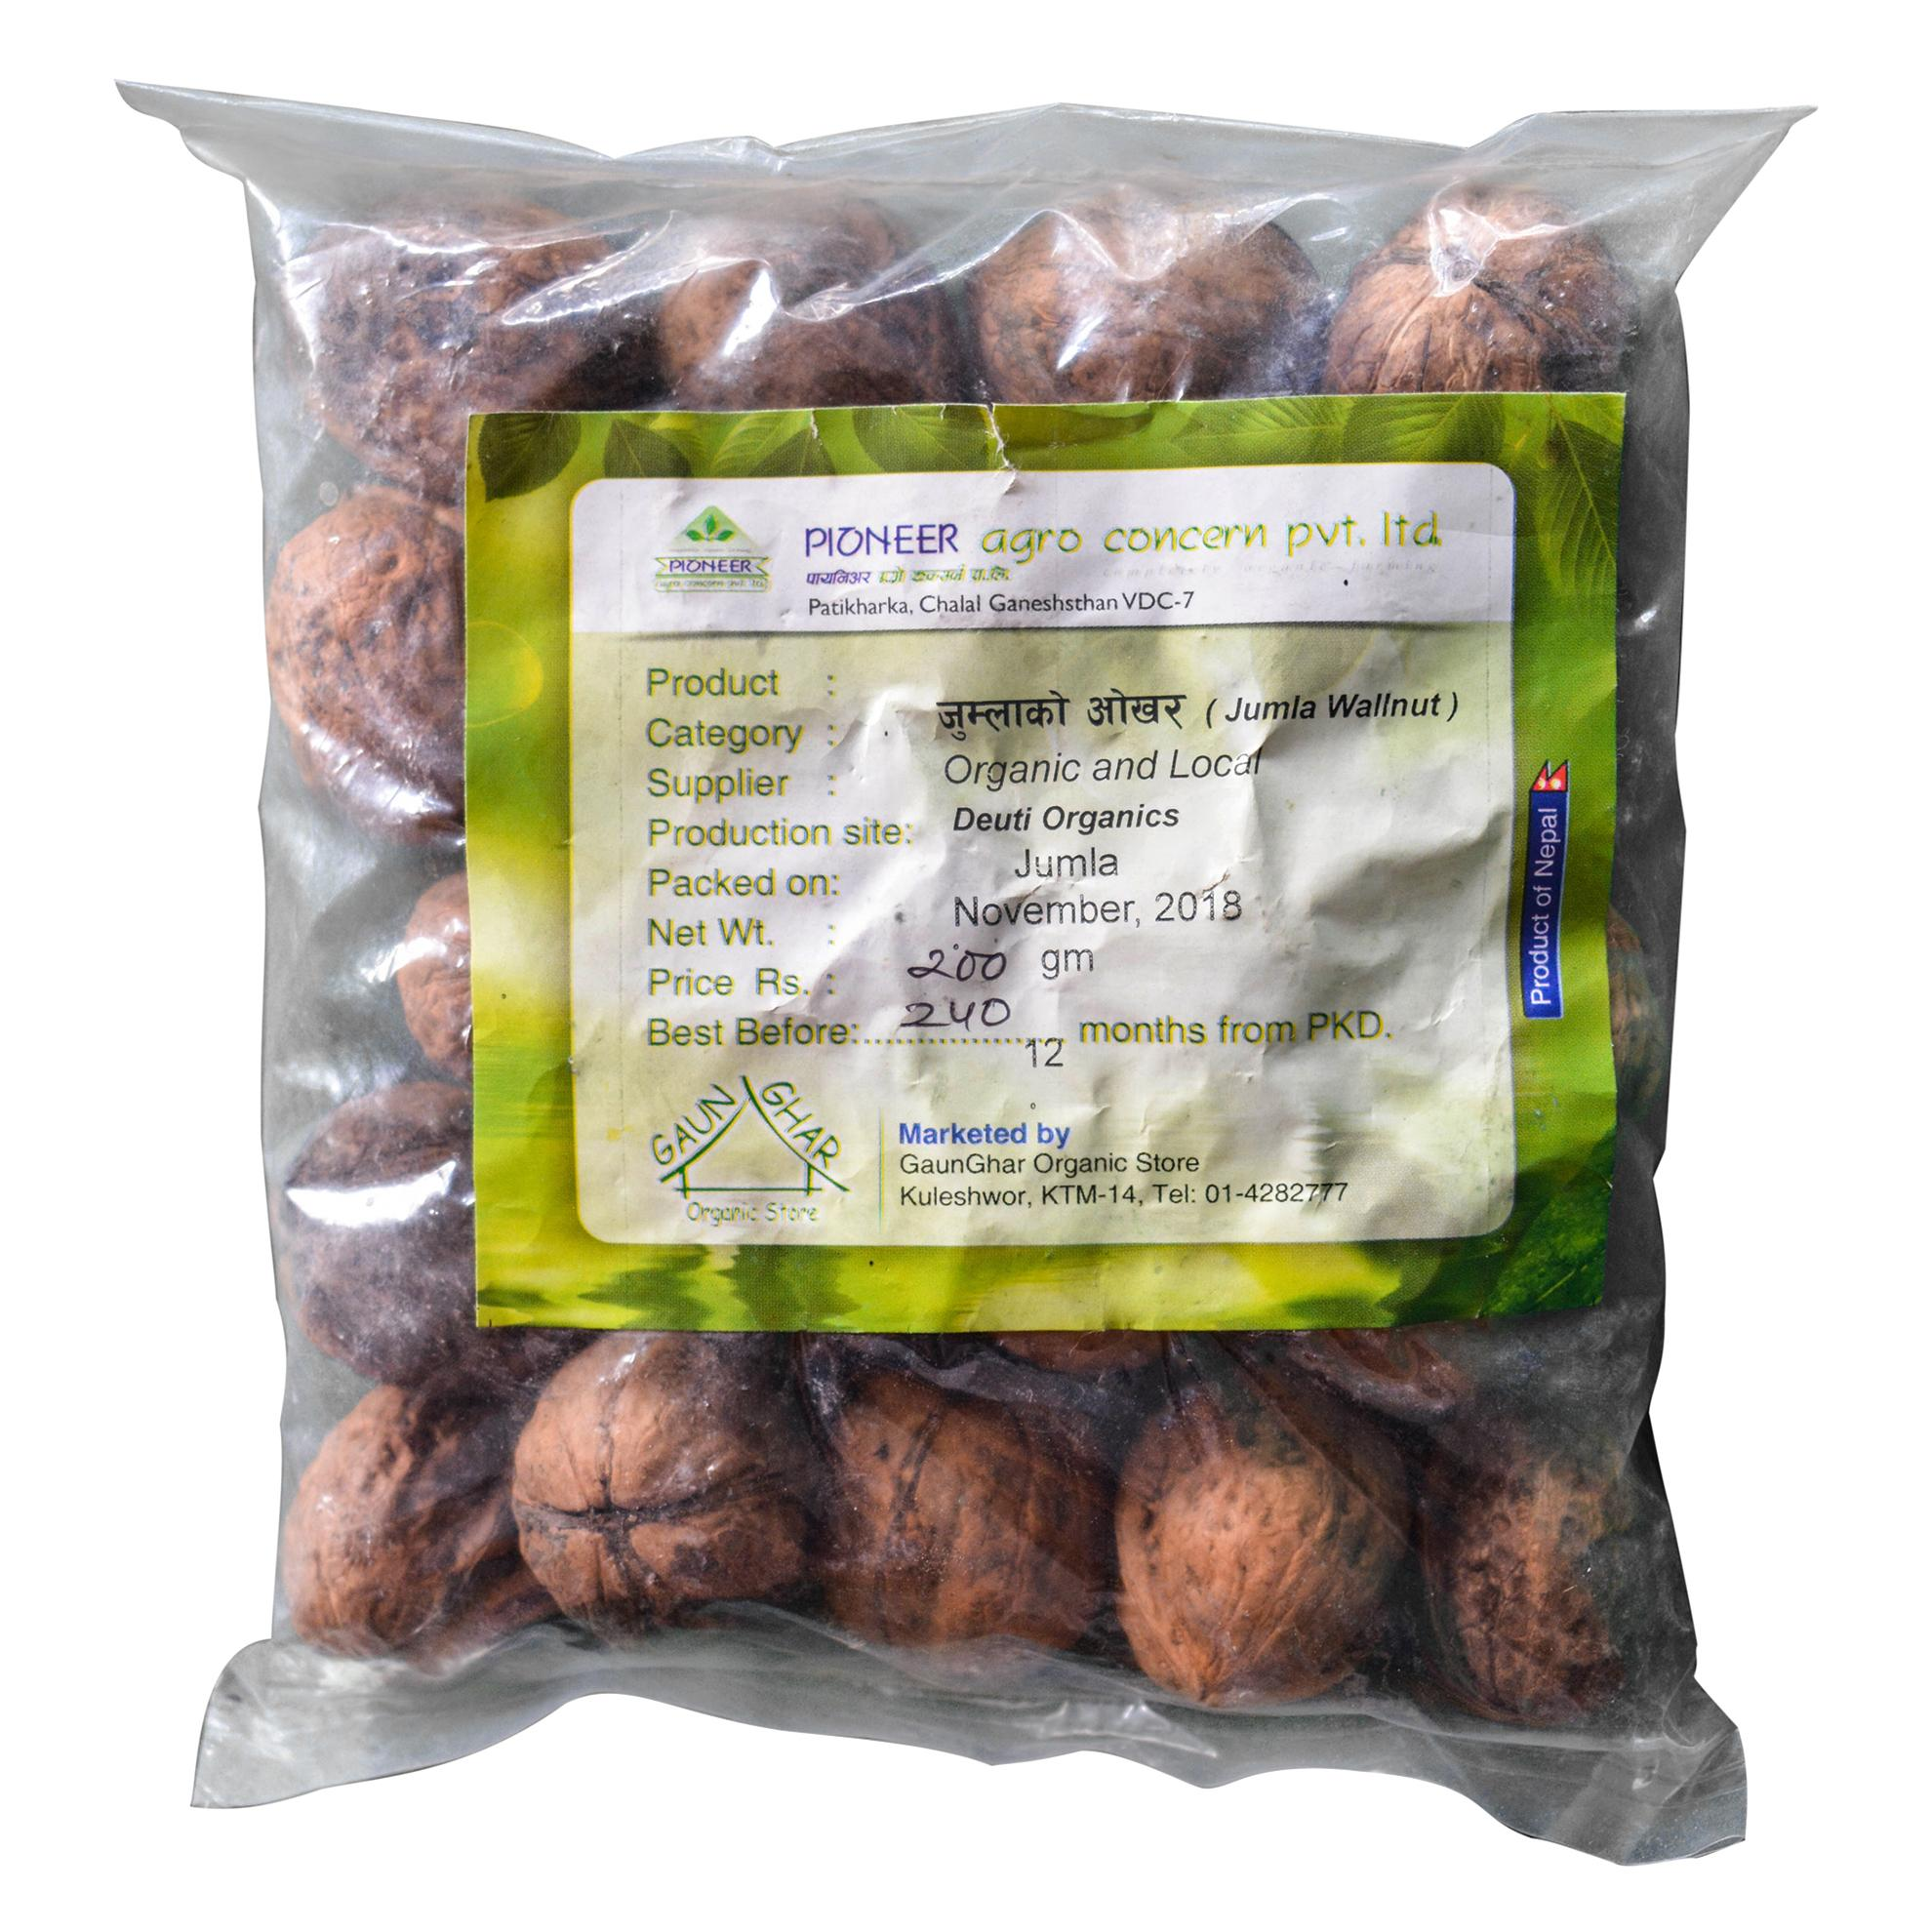 Buy Spices Herbs & Dates Online At Best Price From Daraz com np